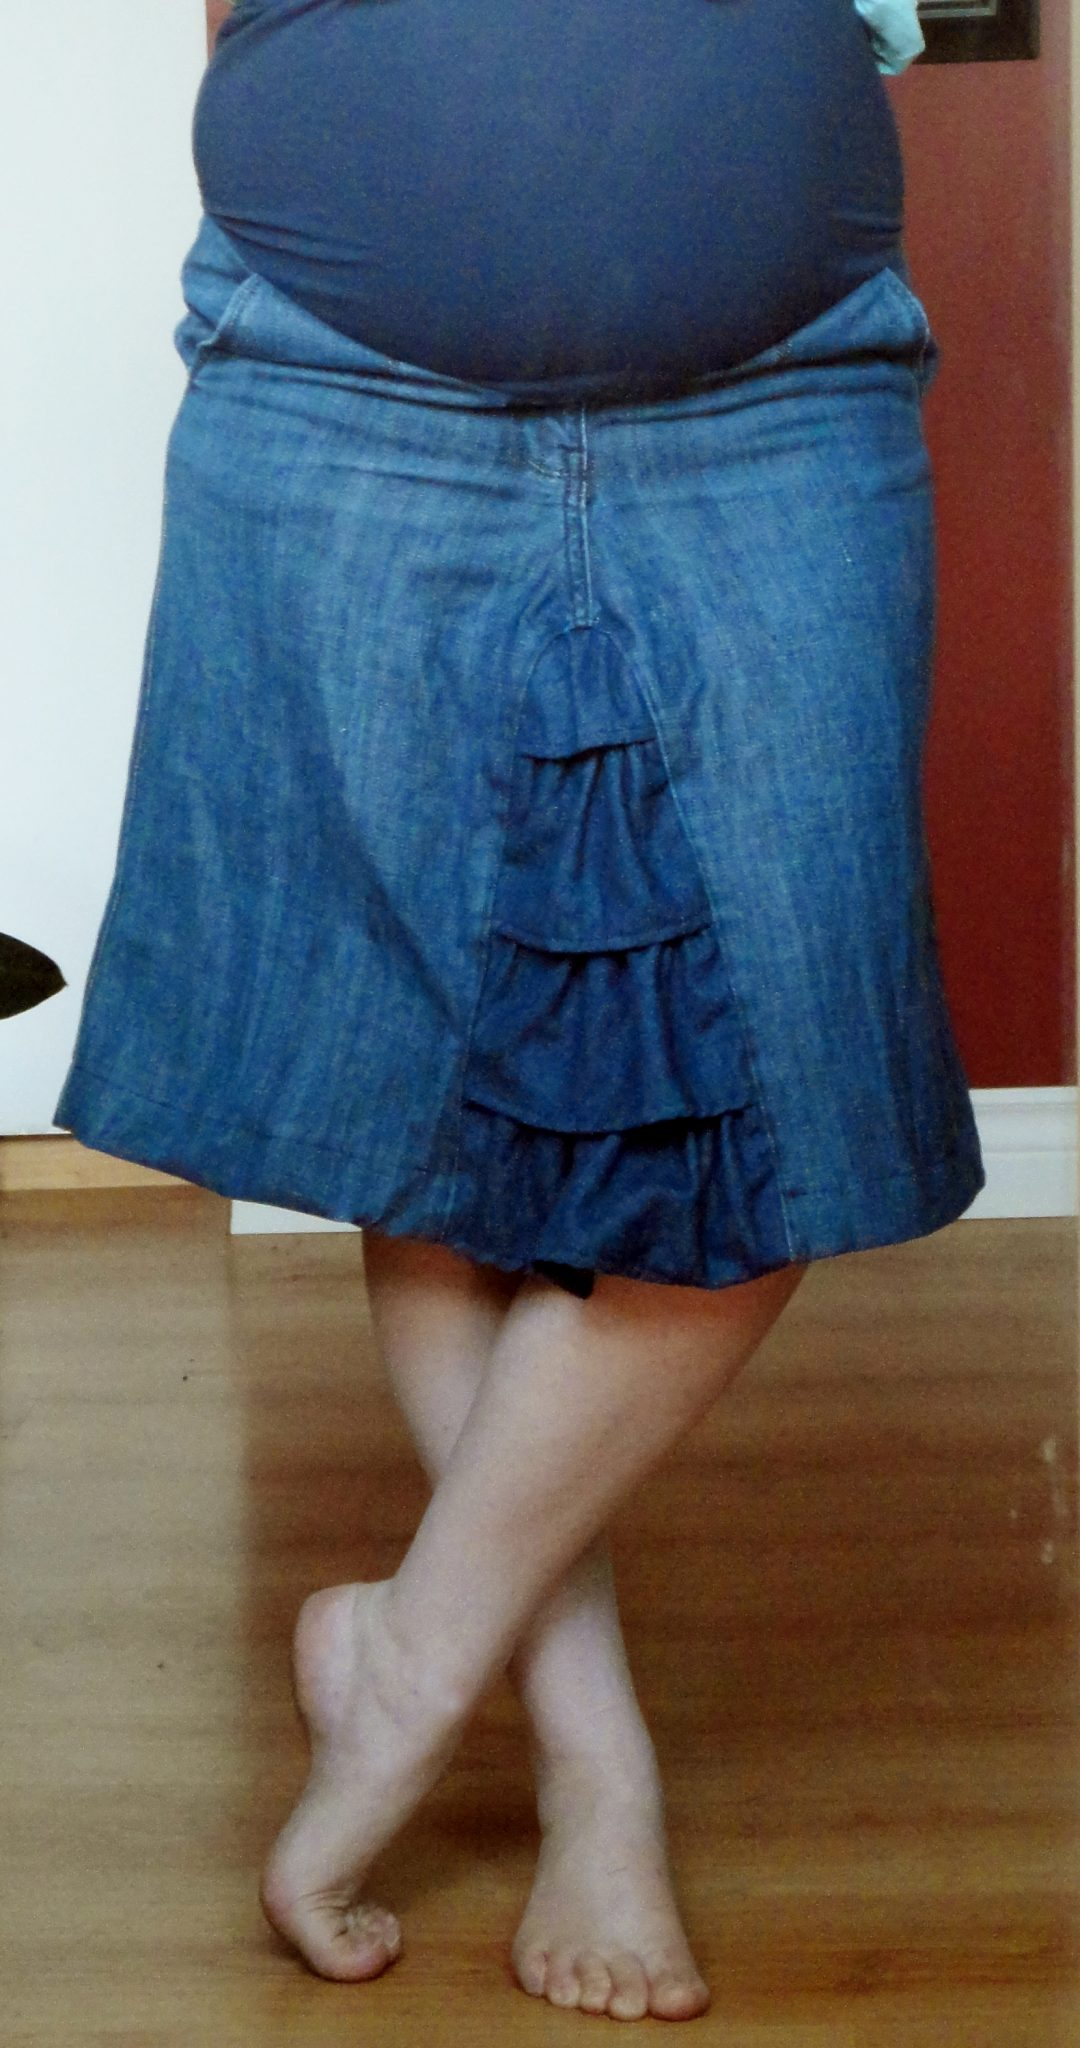 DIY Ruffled Maternity Skirt from Jeans - The DIY Mommy